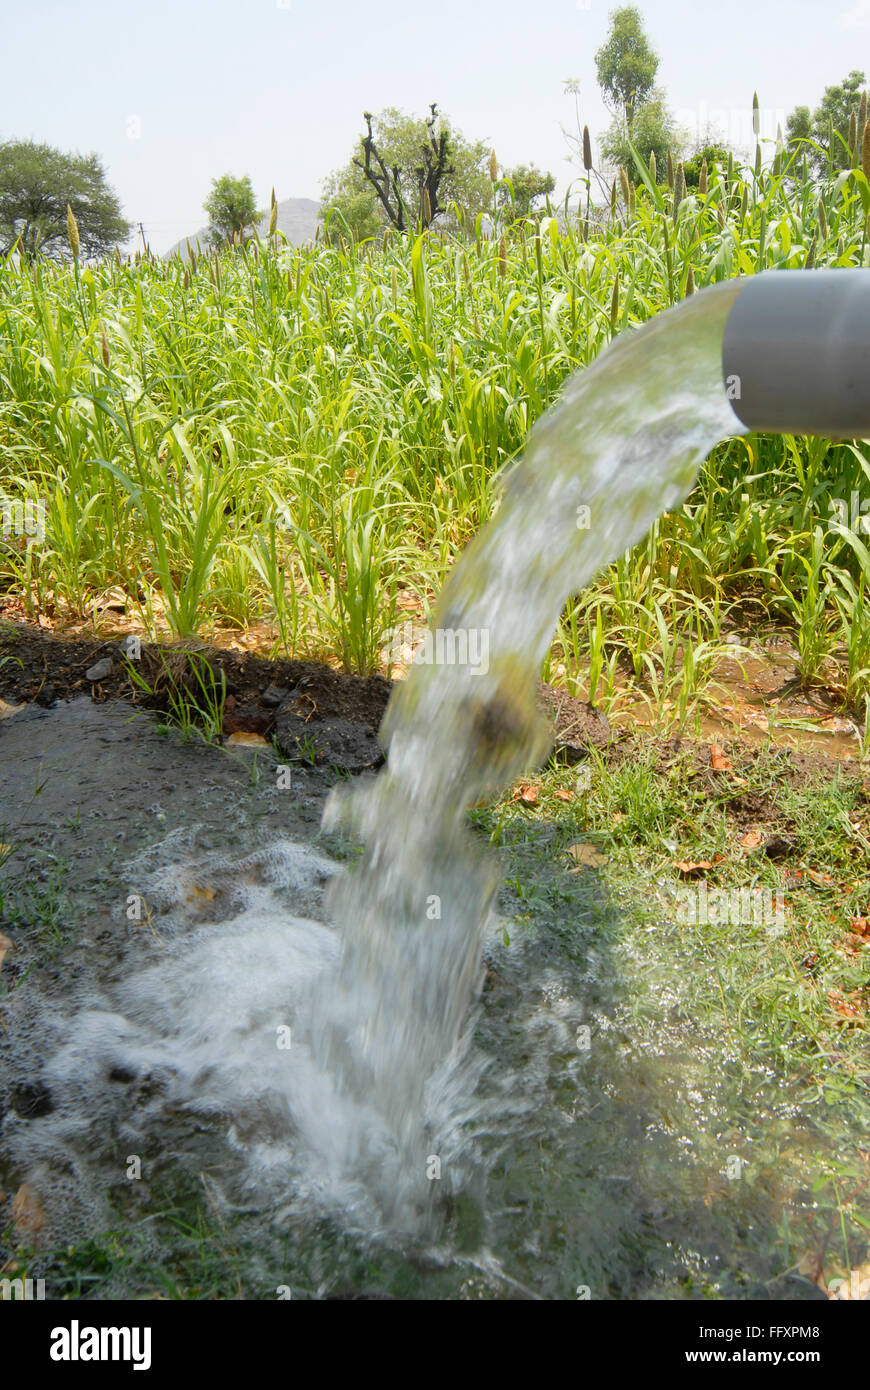 Bajra crop being grown with irrigated water pumped at Dimba village , District Pune , Maharashtra , India - Stock Image